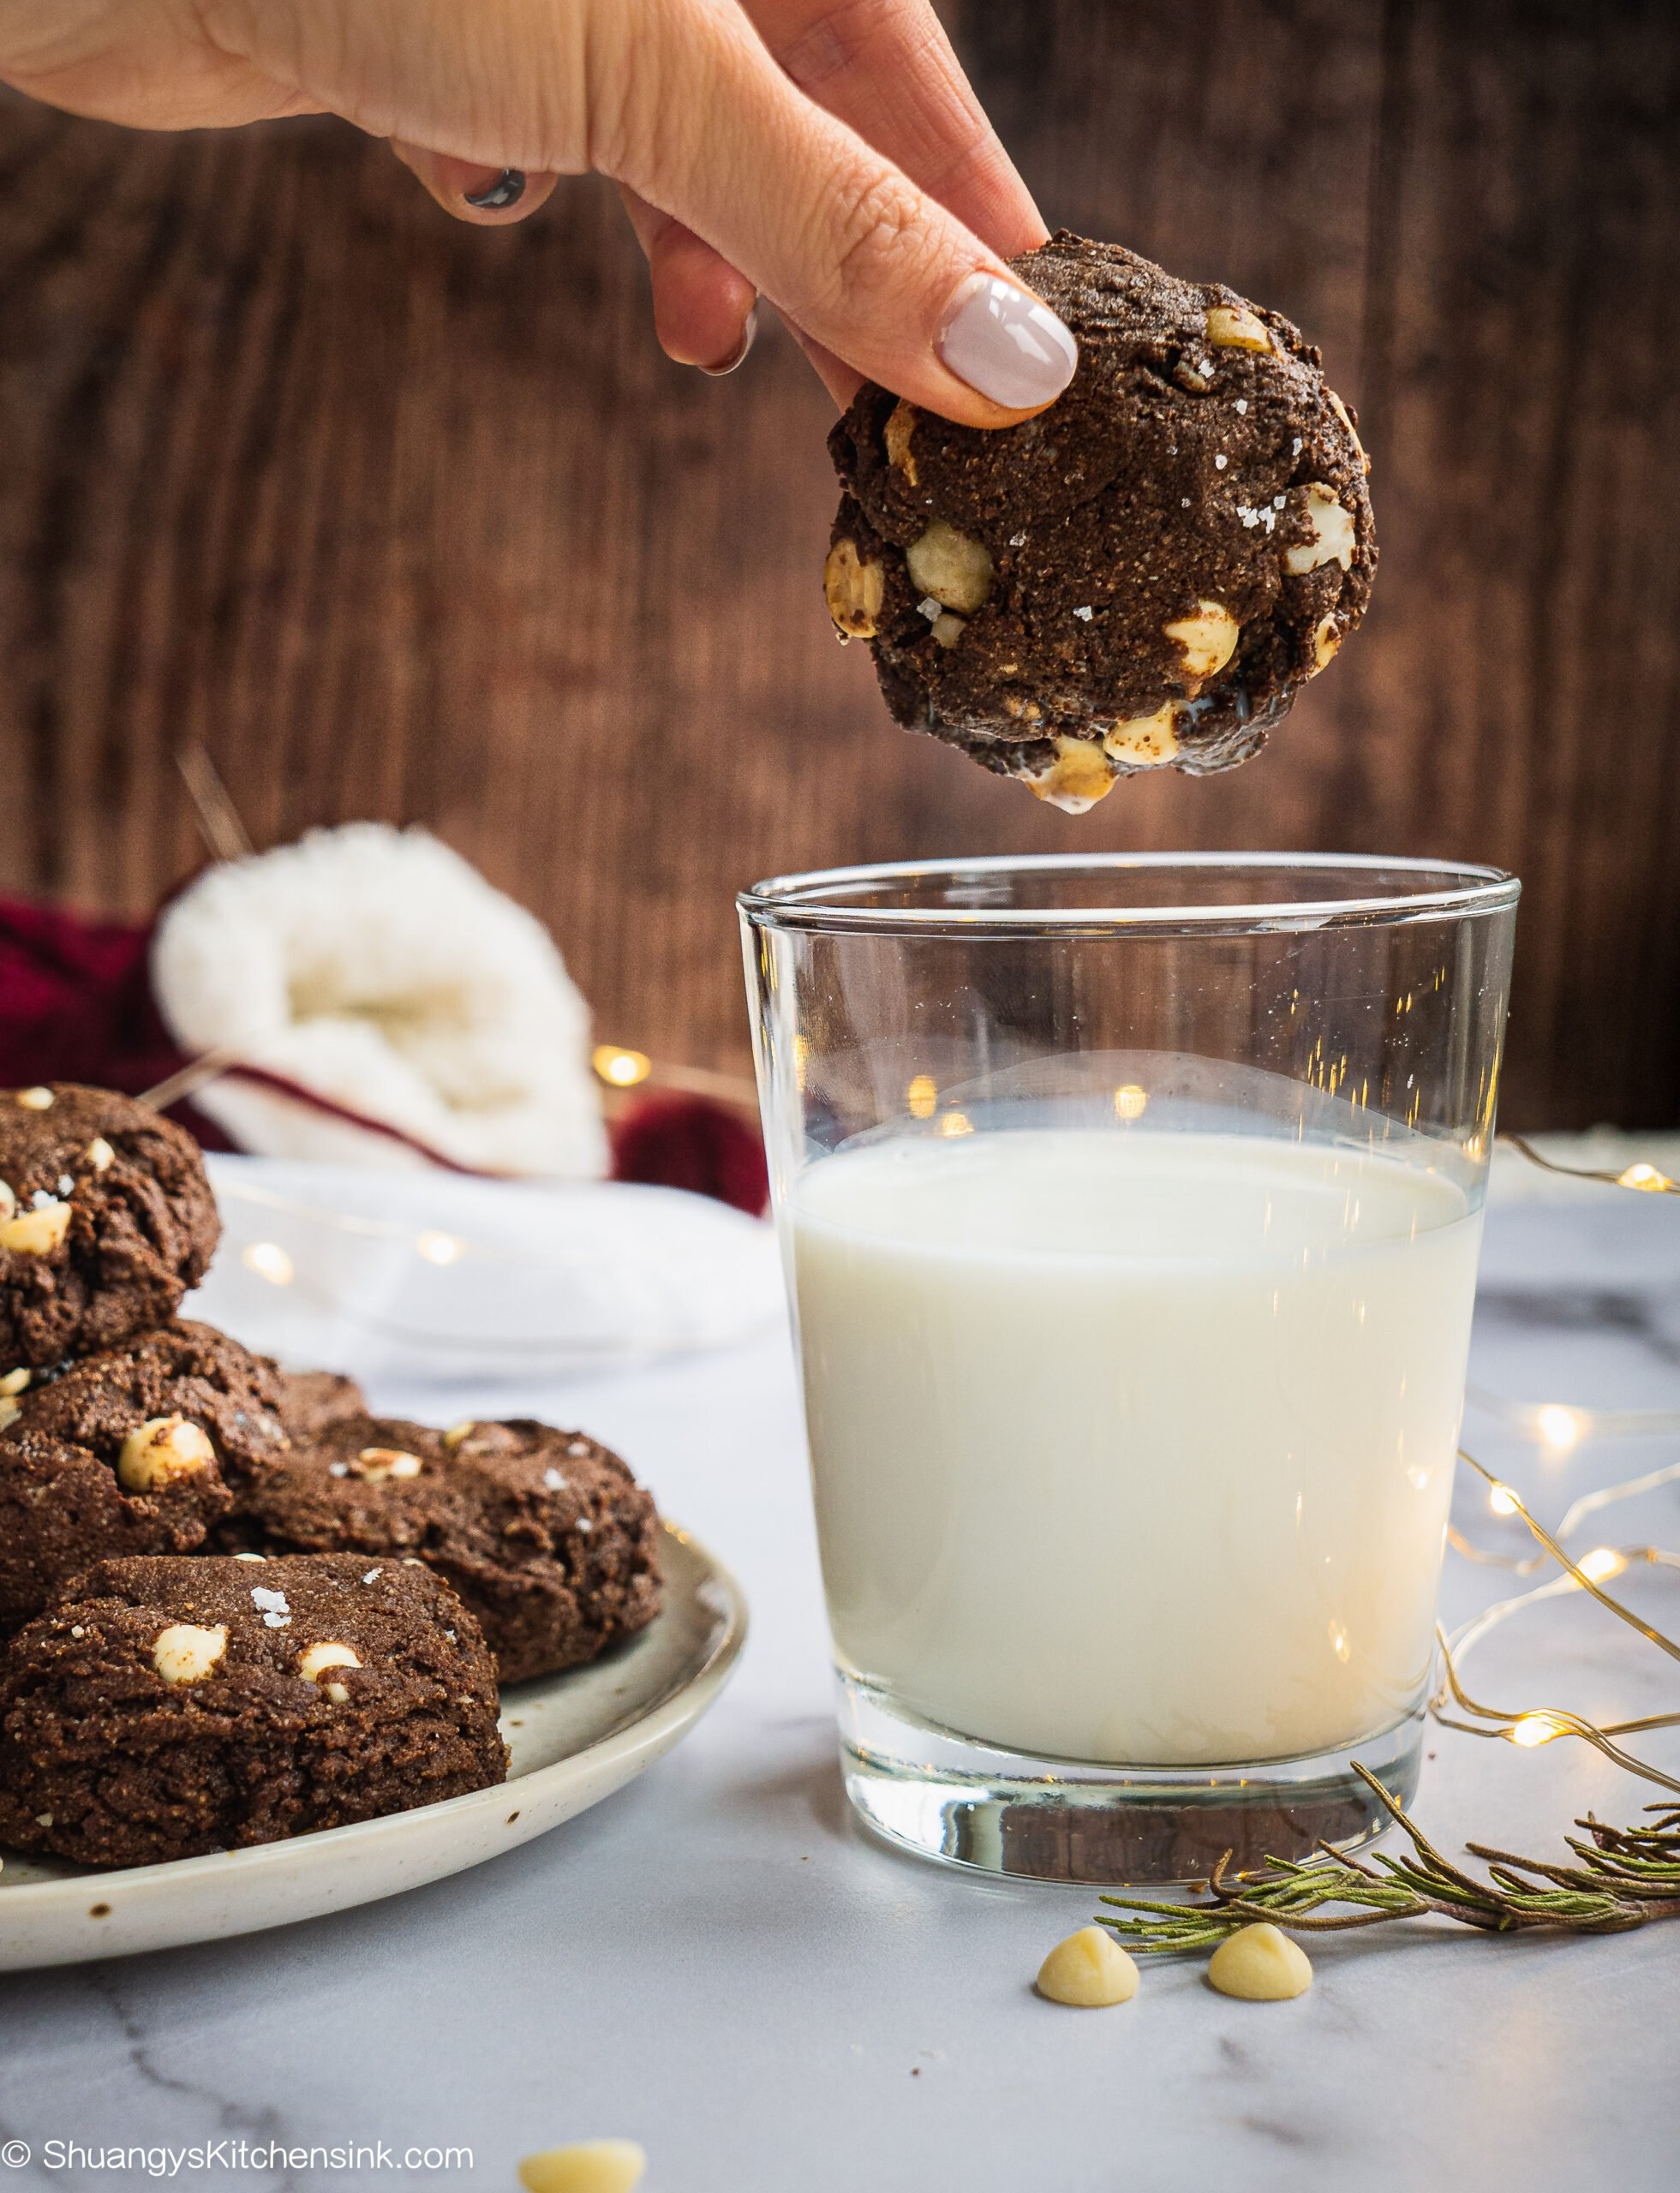 A Plate of White Chocolate Macadamia Nut cookies with a glass of milk in the background. One of them has a bite in it. There are Christmas lights in the background. A hand is grabbing a cookie to dip in the milk.